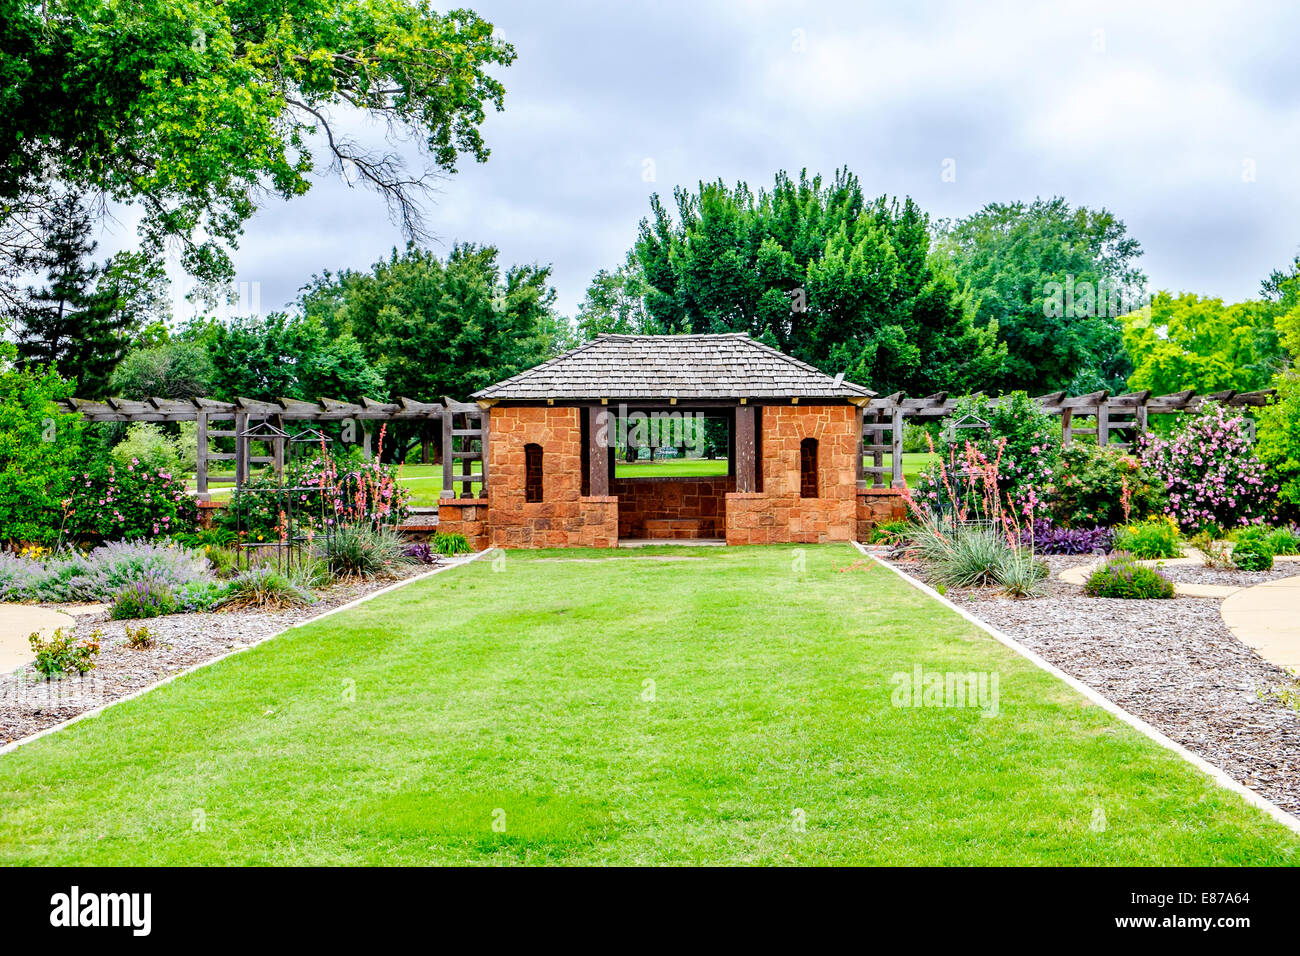 Rogers Garden Stone A stone gazebo with floral plantings in will rogers park in oklahoma a stone gazebo with floral plantings in will rogers park in oklahoma city oklahoma usa workwithnaturefo